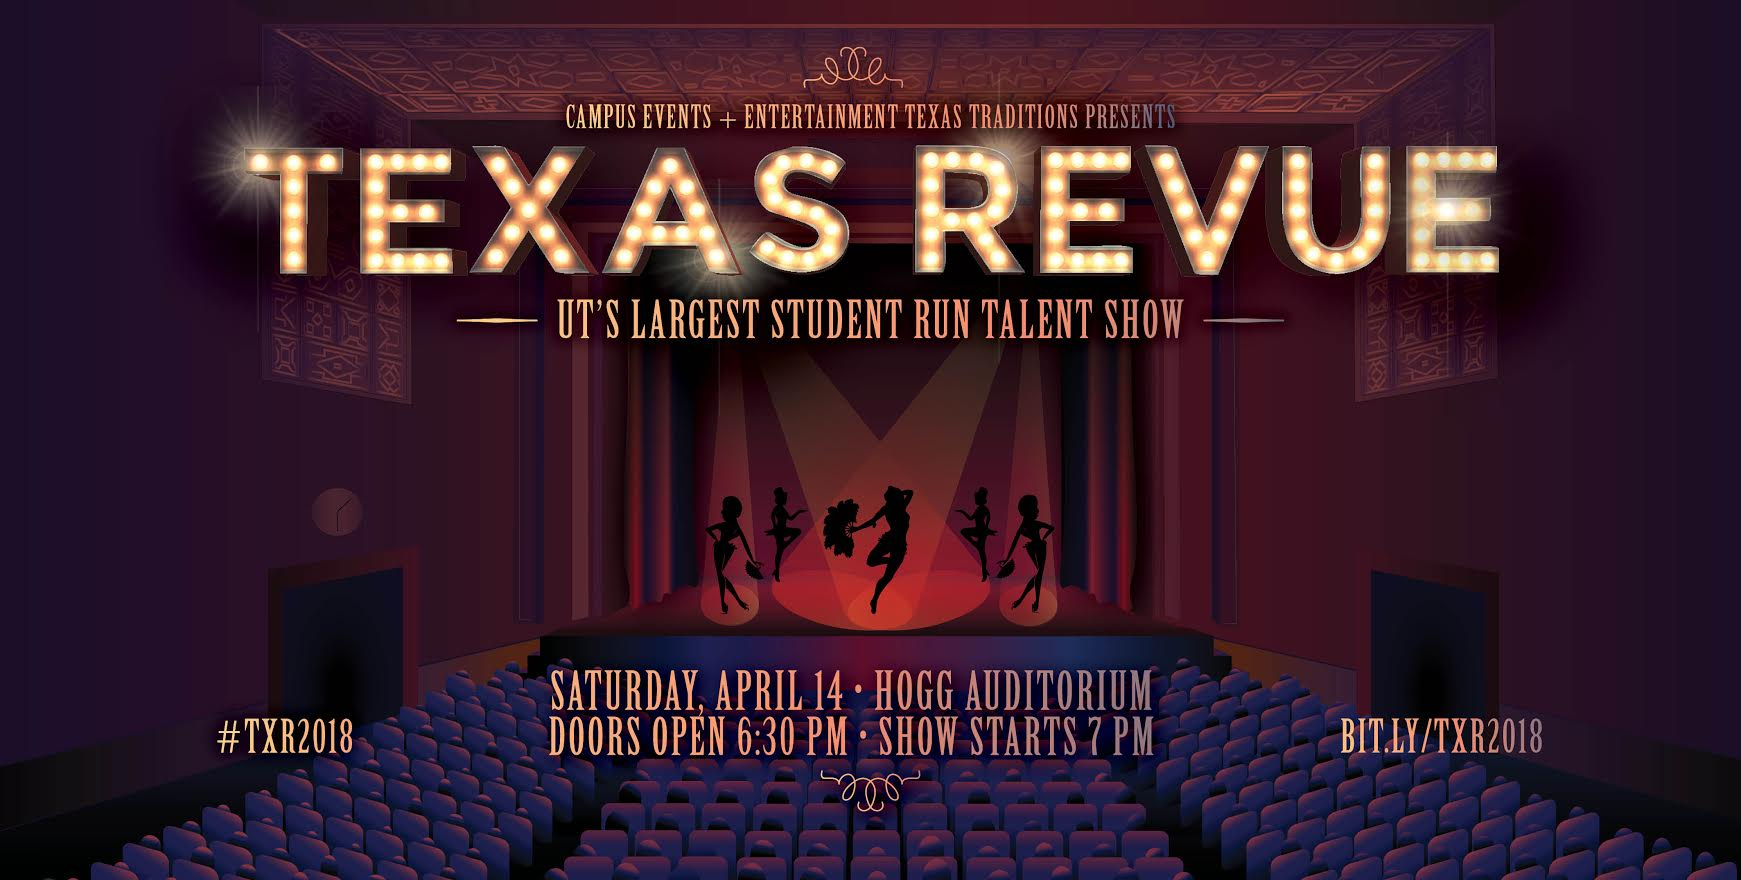 Advertisement for Texas Review featuring dancing silhouettes on a stage.